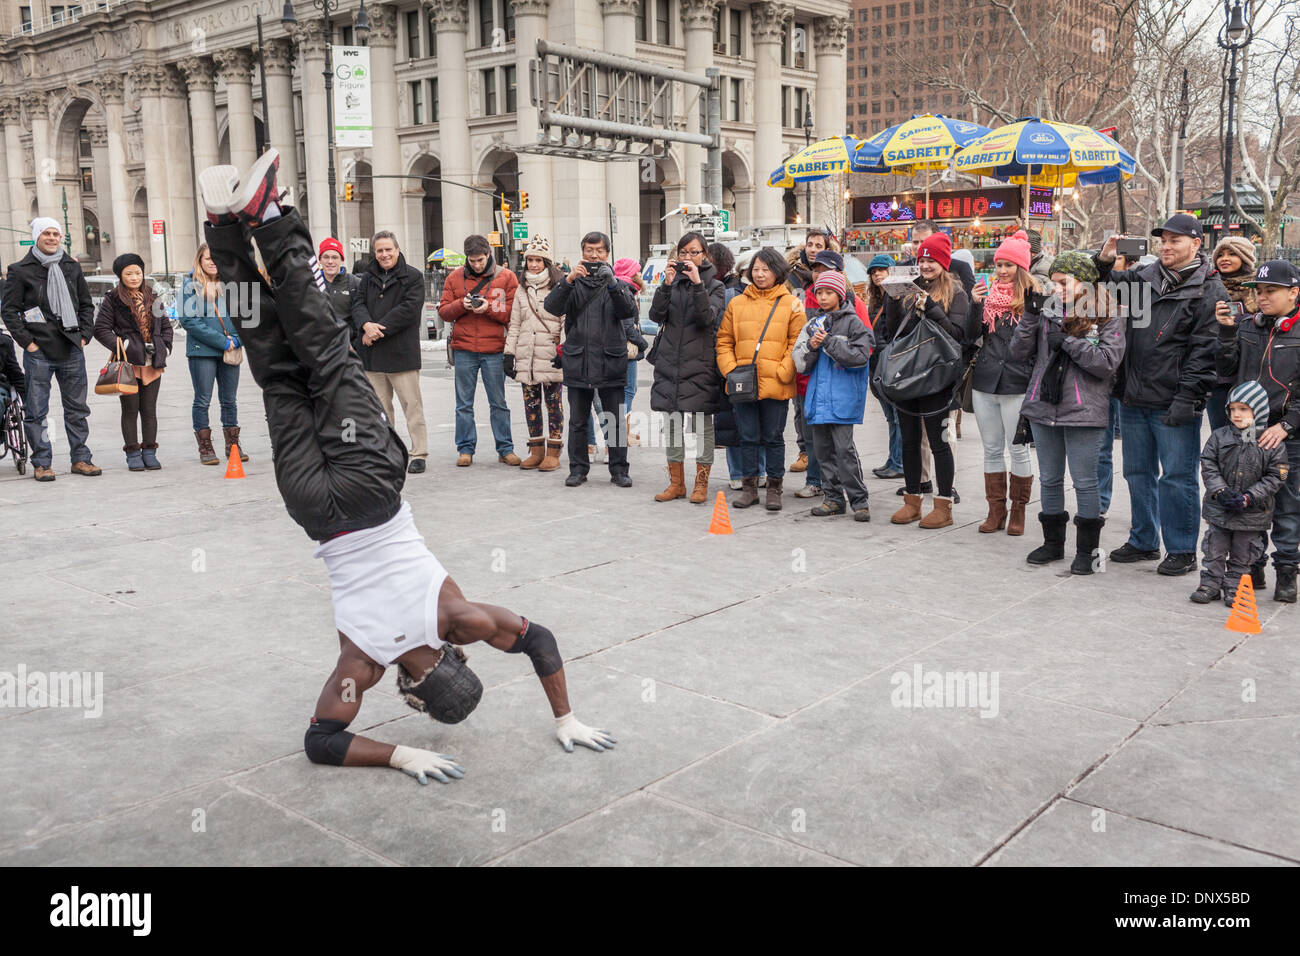 Street performers in Financial District, lower New York City - Stock Image